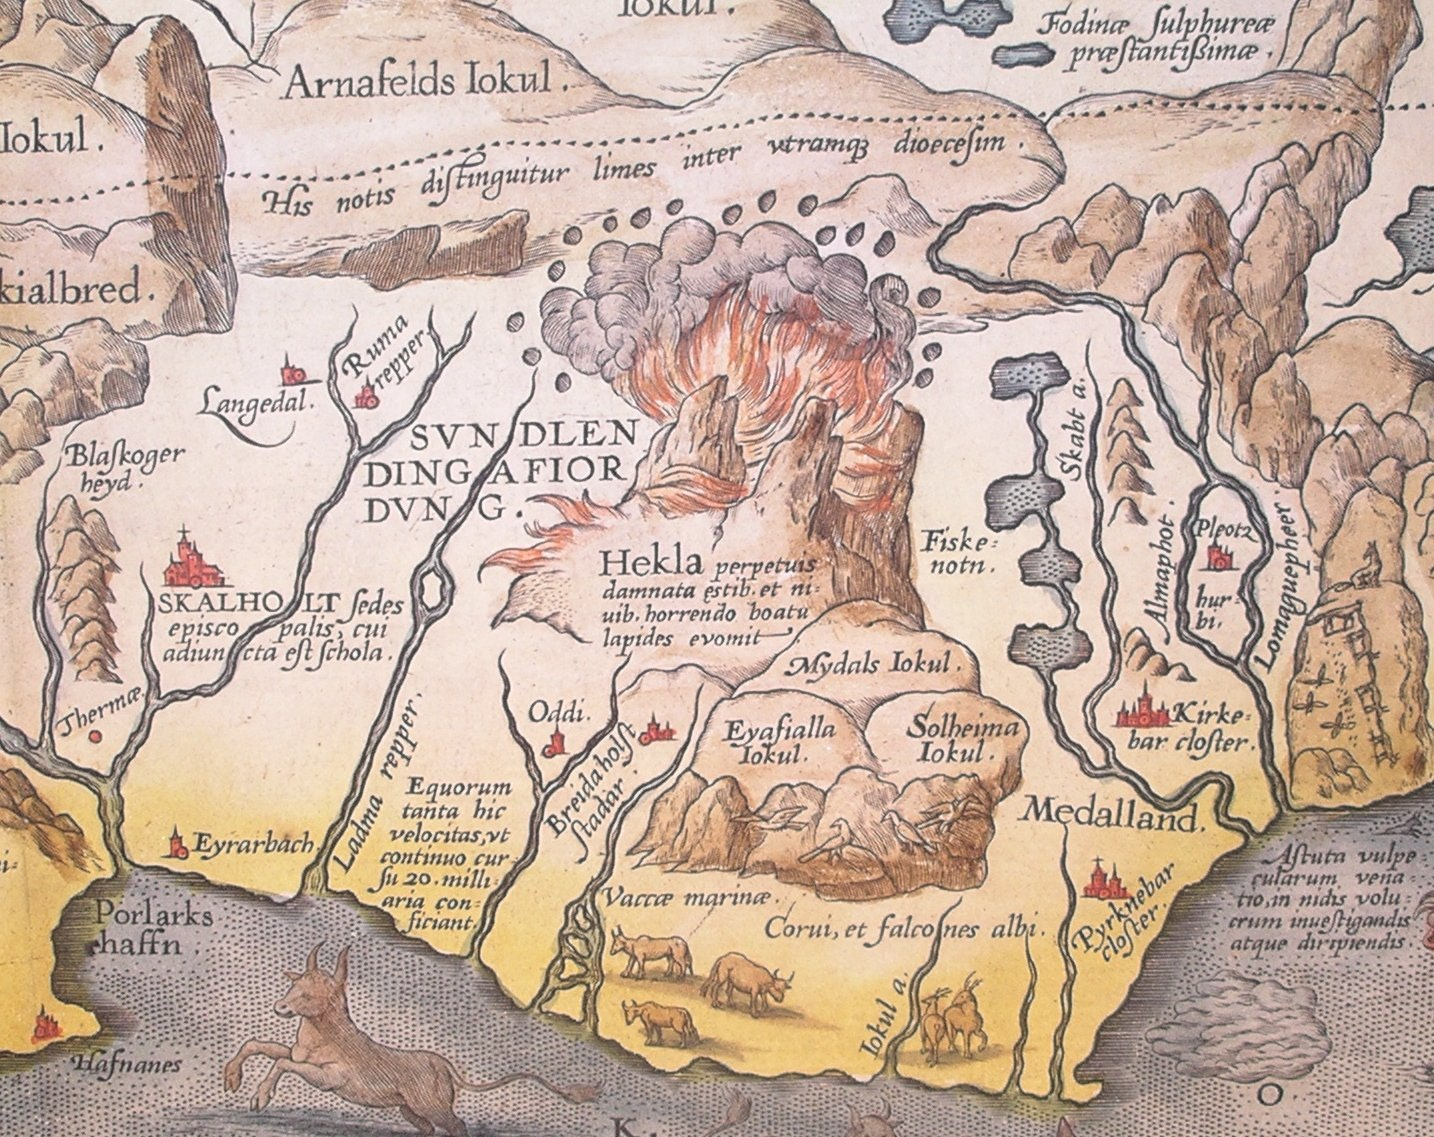 A 1585 map showing Mt. Hekla erupt.